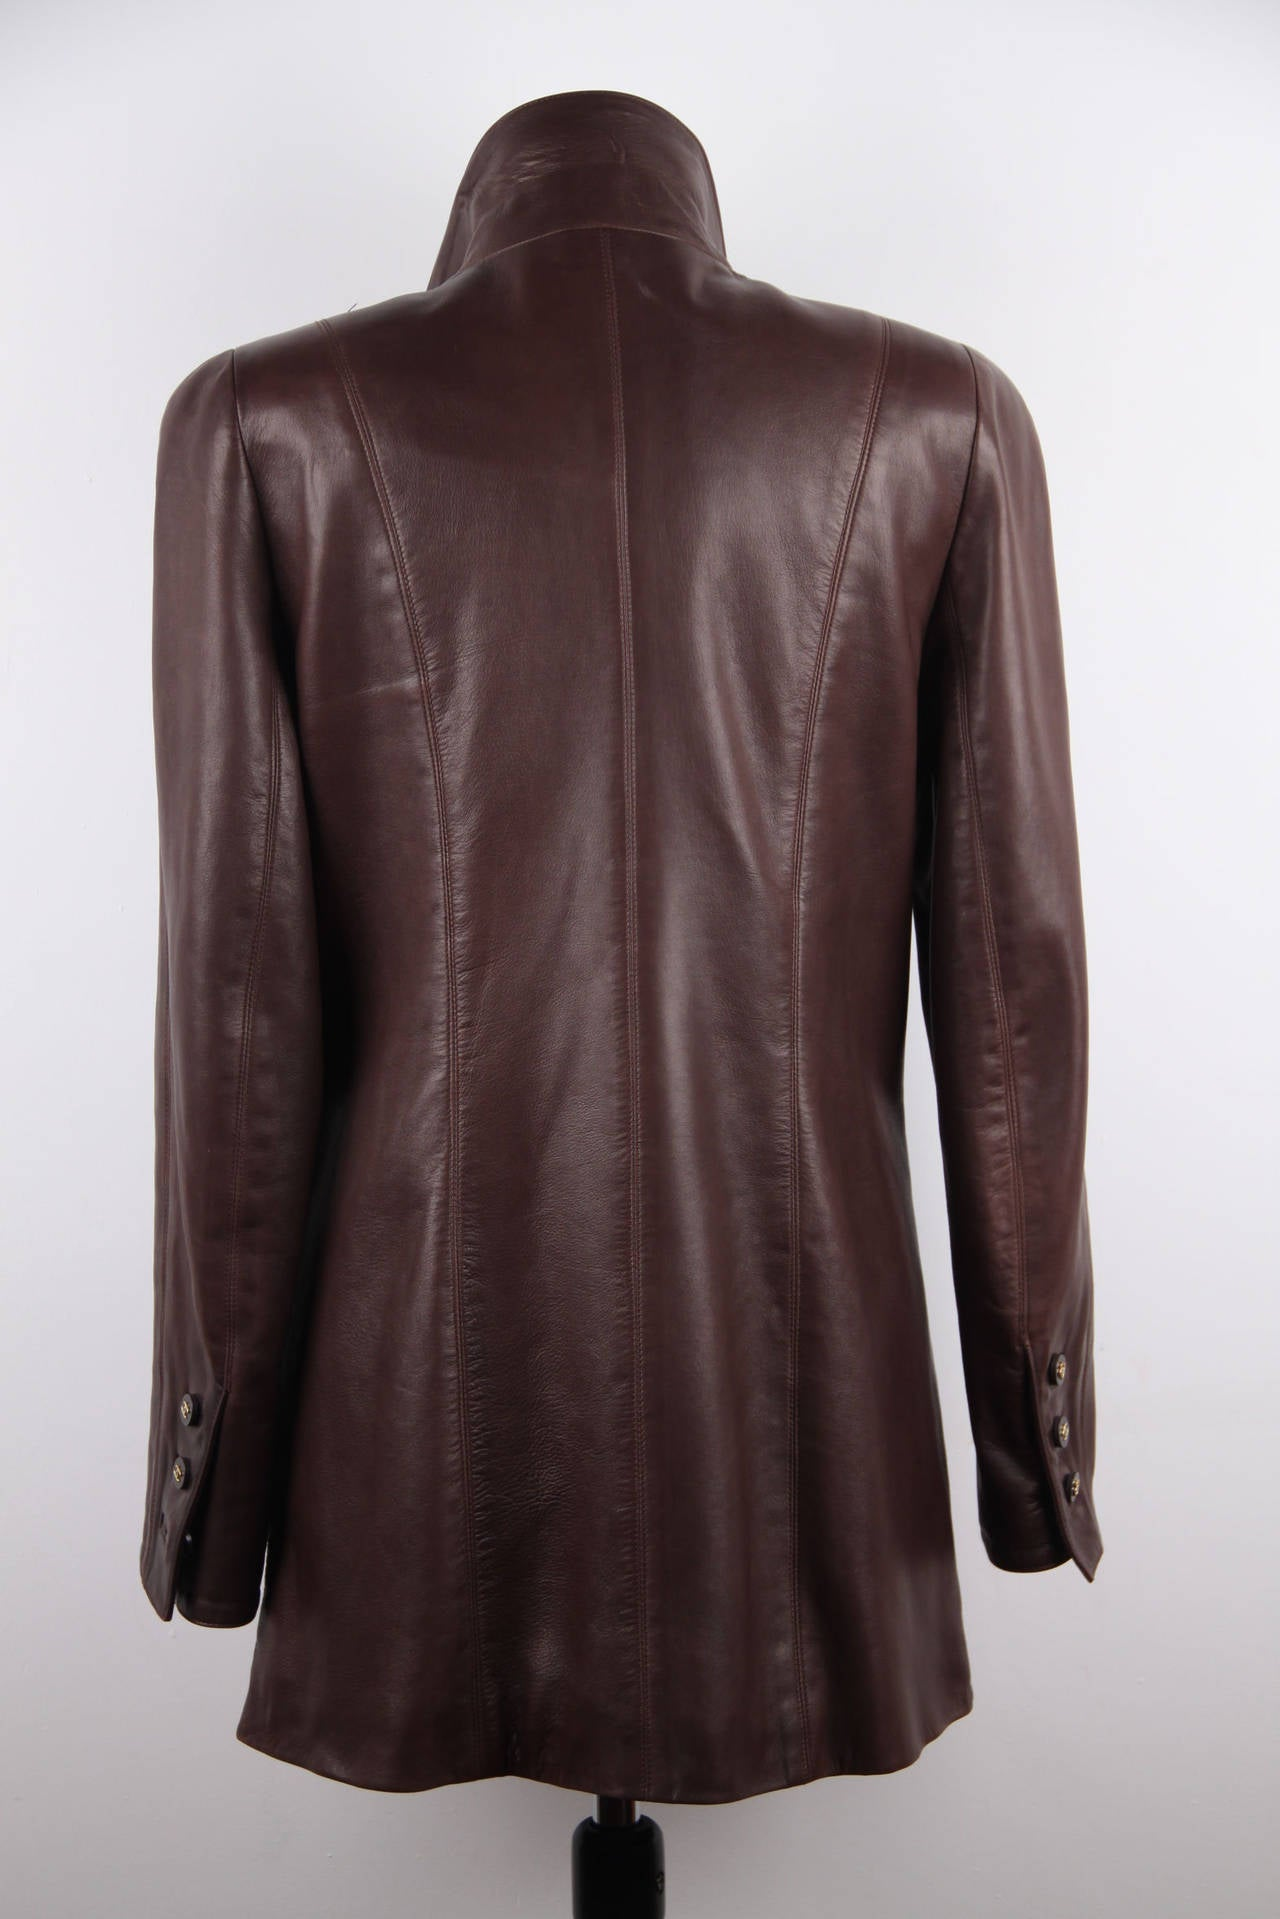 CHANEL BOUTIQUE VINTAGE Chocolate Brown LEATHER JACKET Blazer SIZE 38 FR 3